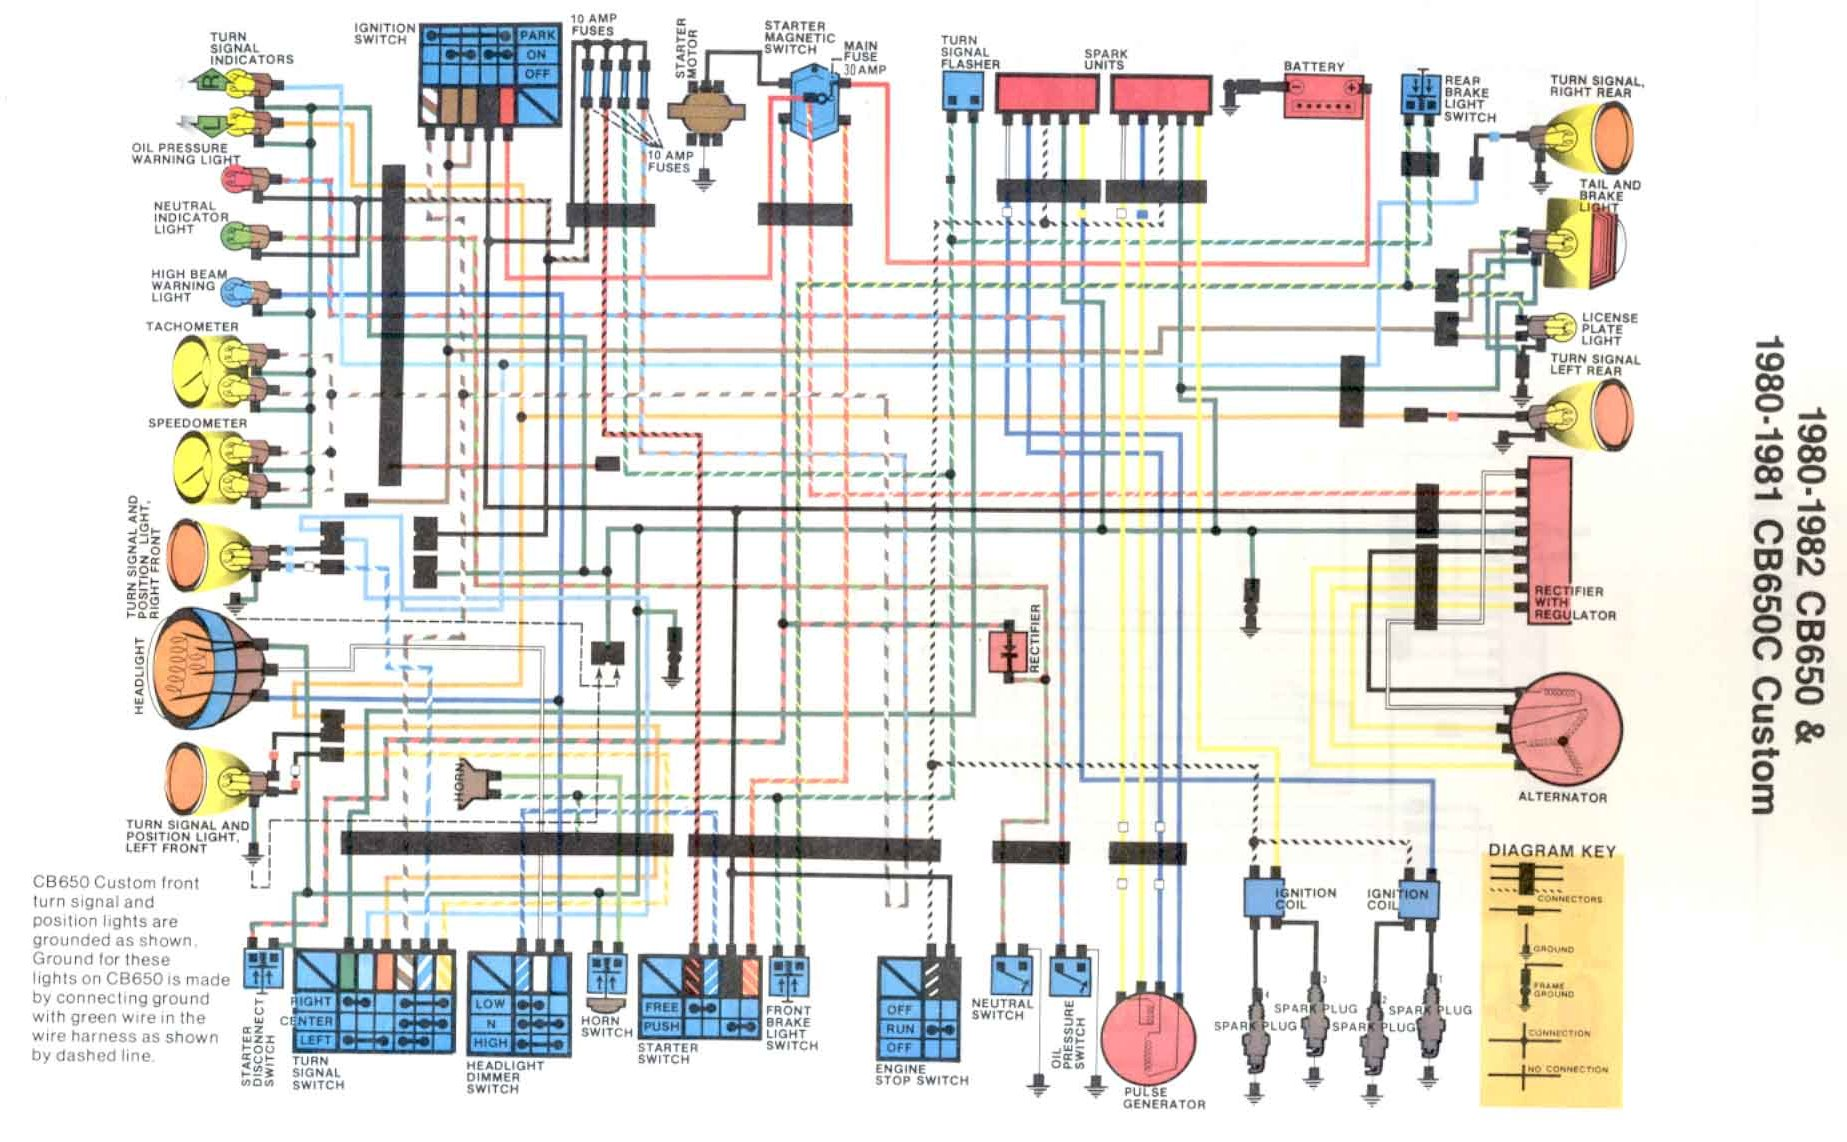 Wiring Ge Schematic Jkp86wfww Diagram Hopper Library1982 Honda Cb750 Auto Electrical Cb650